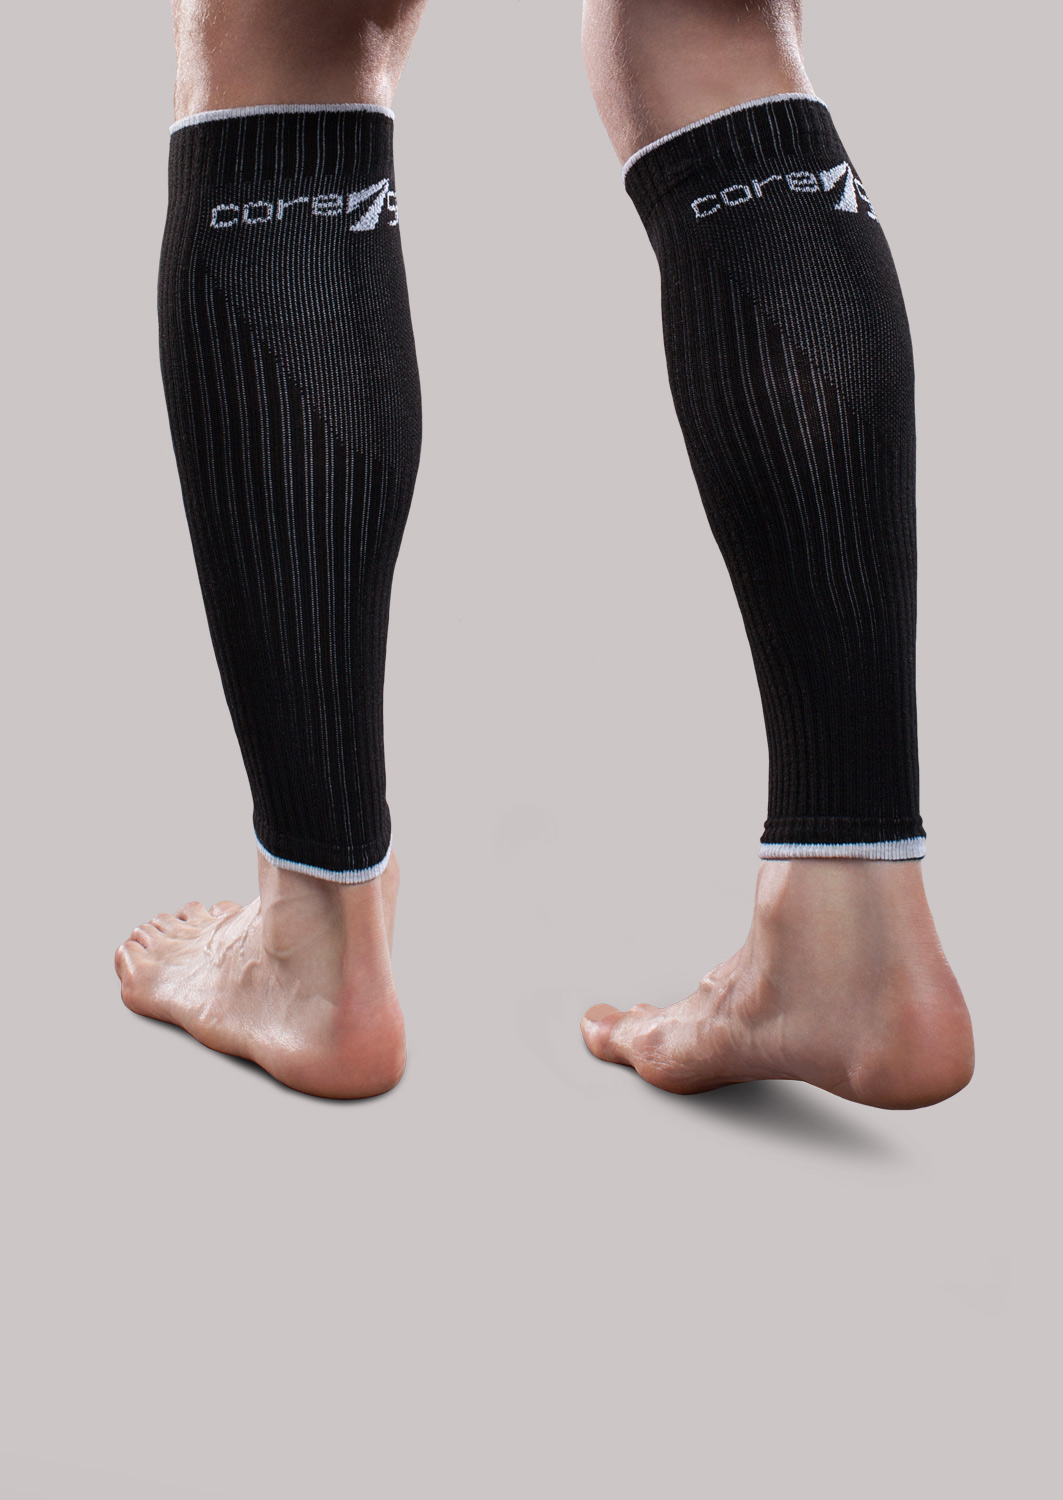 CoreSport Athletic Leg Sleeves for Support Black, XL 15-20mmHg Mild Compression for Athletes